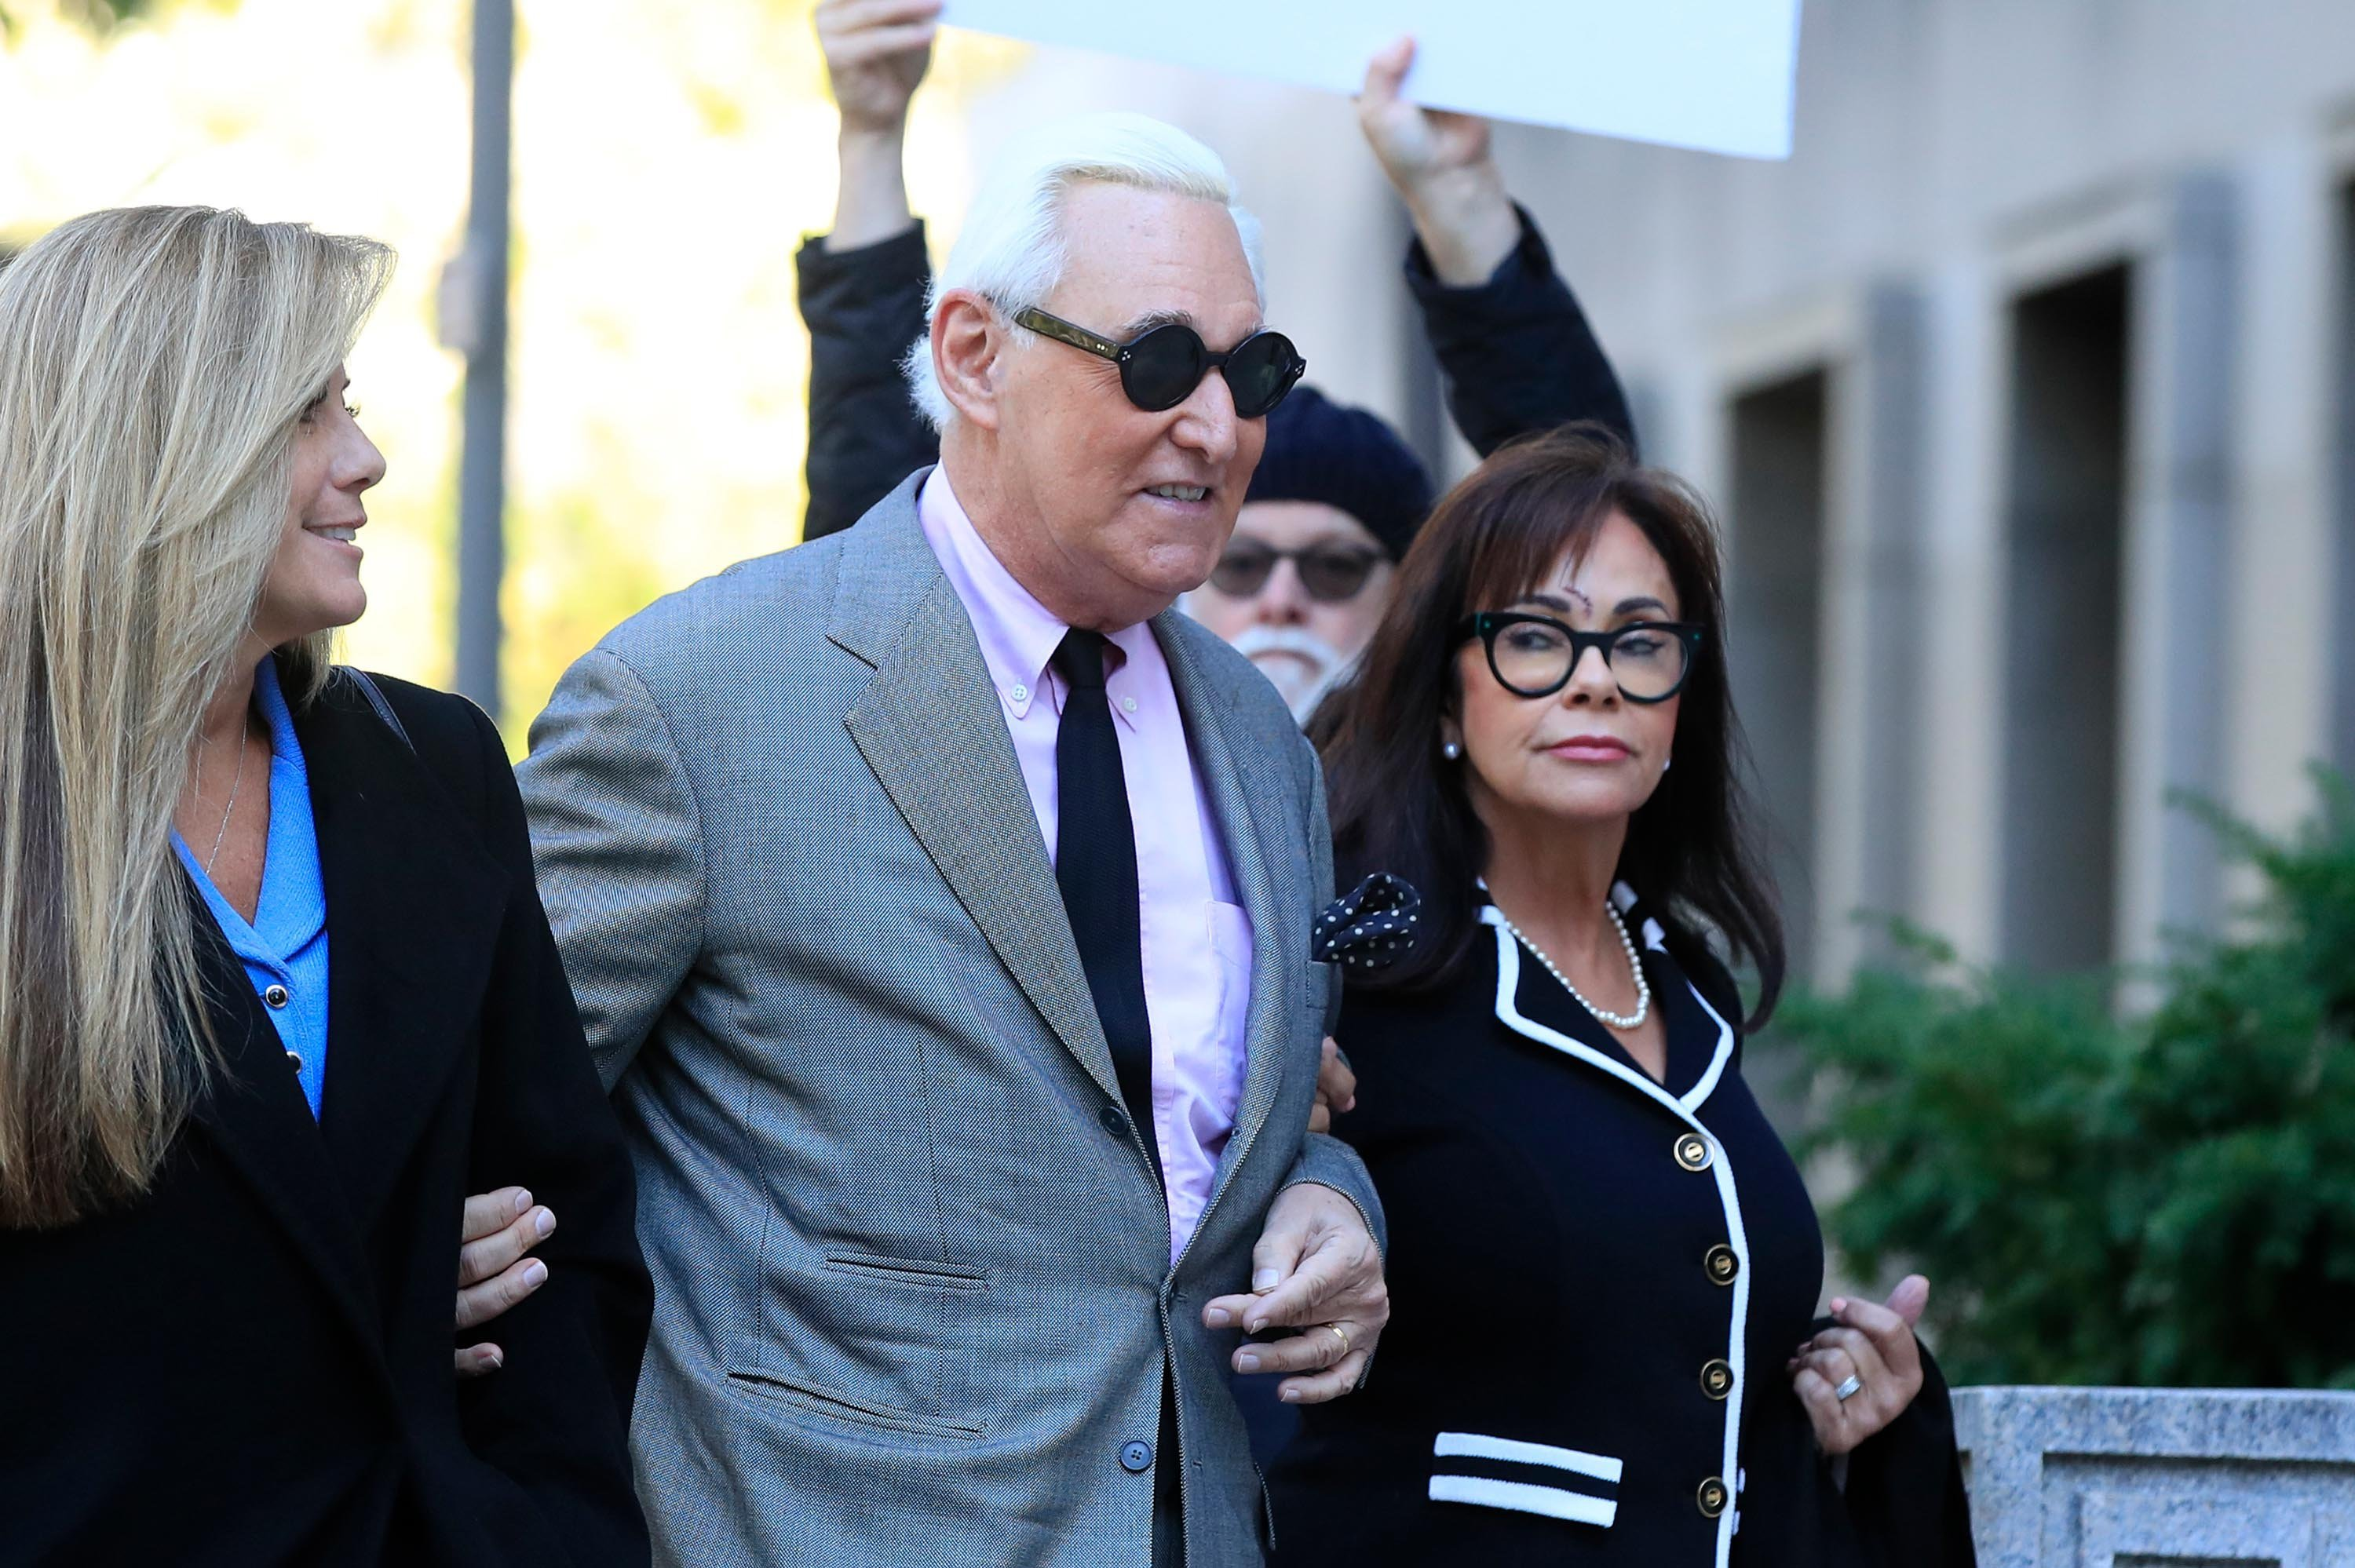 'Truth matters': Prosecutors urge jury to convict Roger Stone for lying to protect Trump